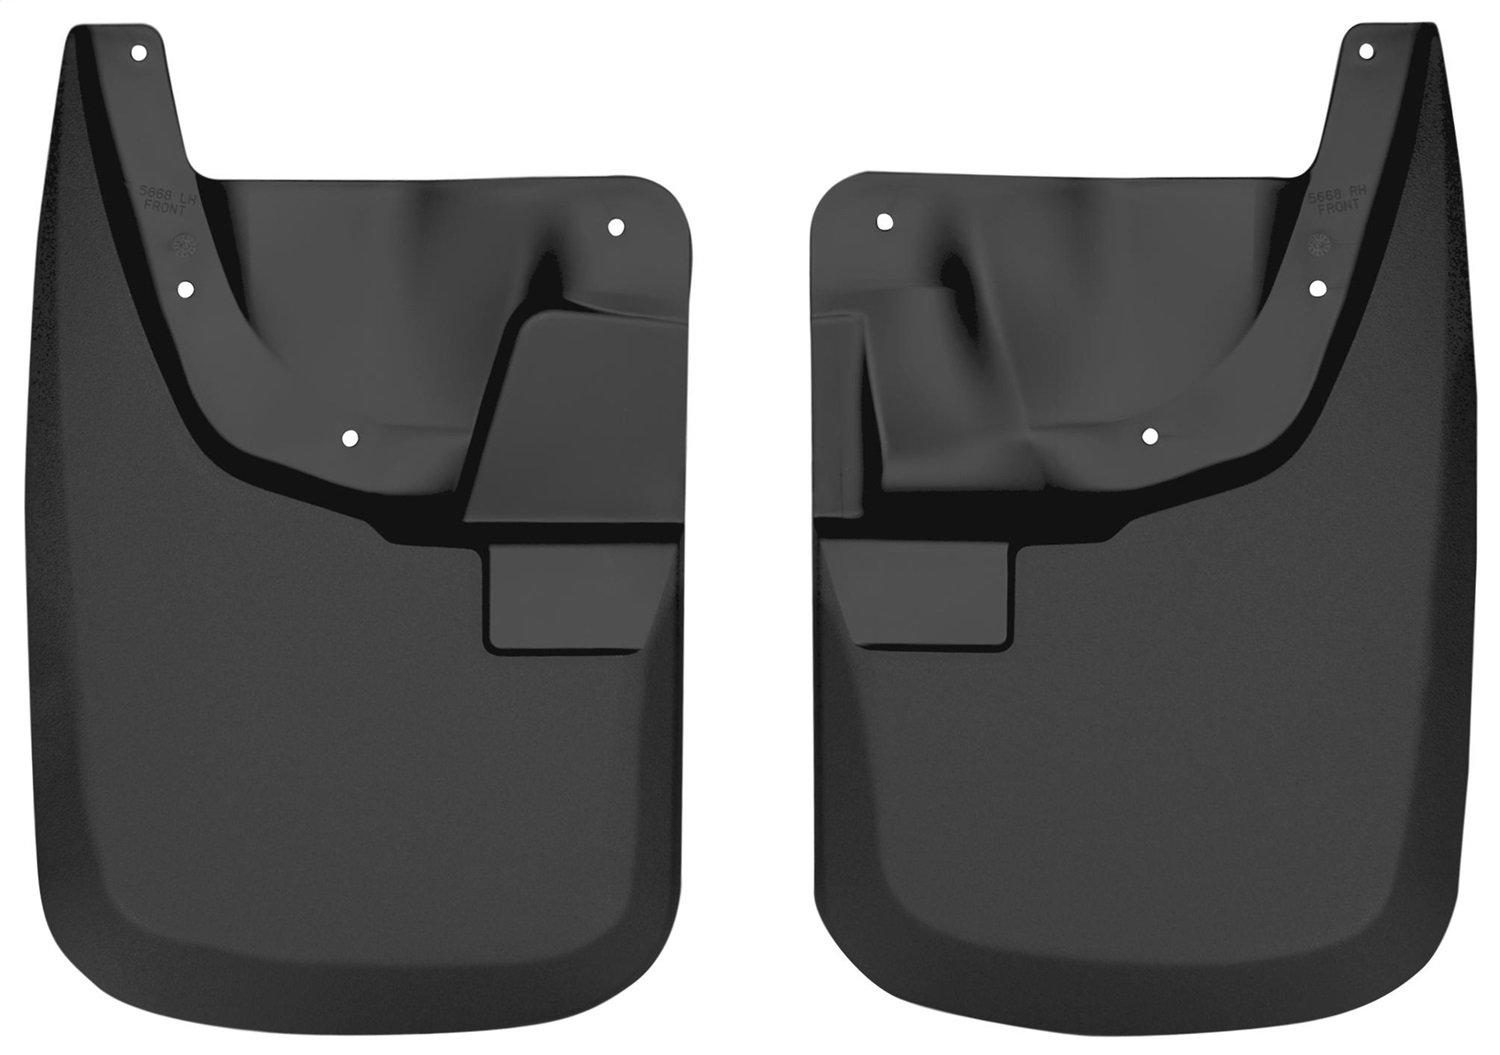 Husky Liners Custom Fit Molded Front Mudguard for Select Ford F-250 /F-350 Models - Pack of 2 (Black) Winfield Consumer Products 56681